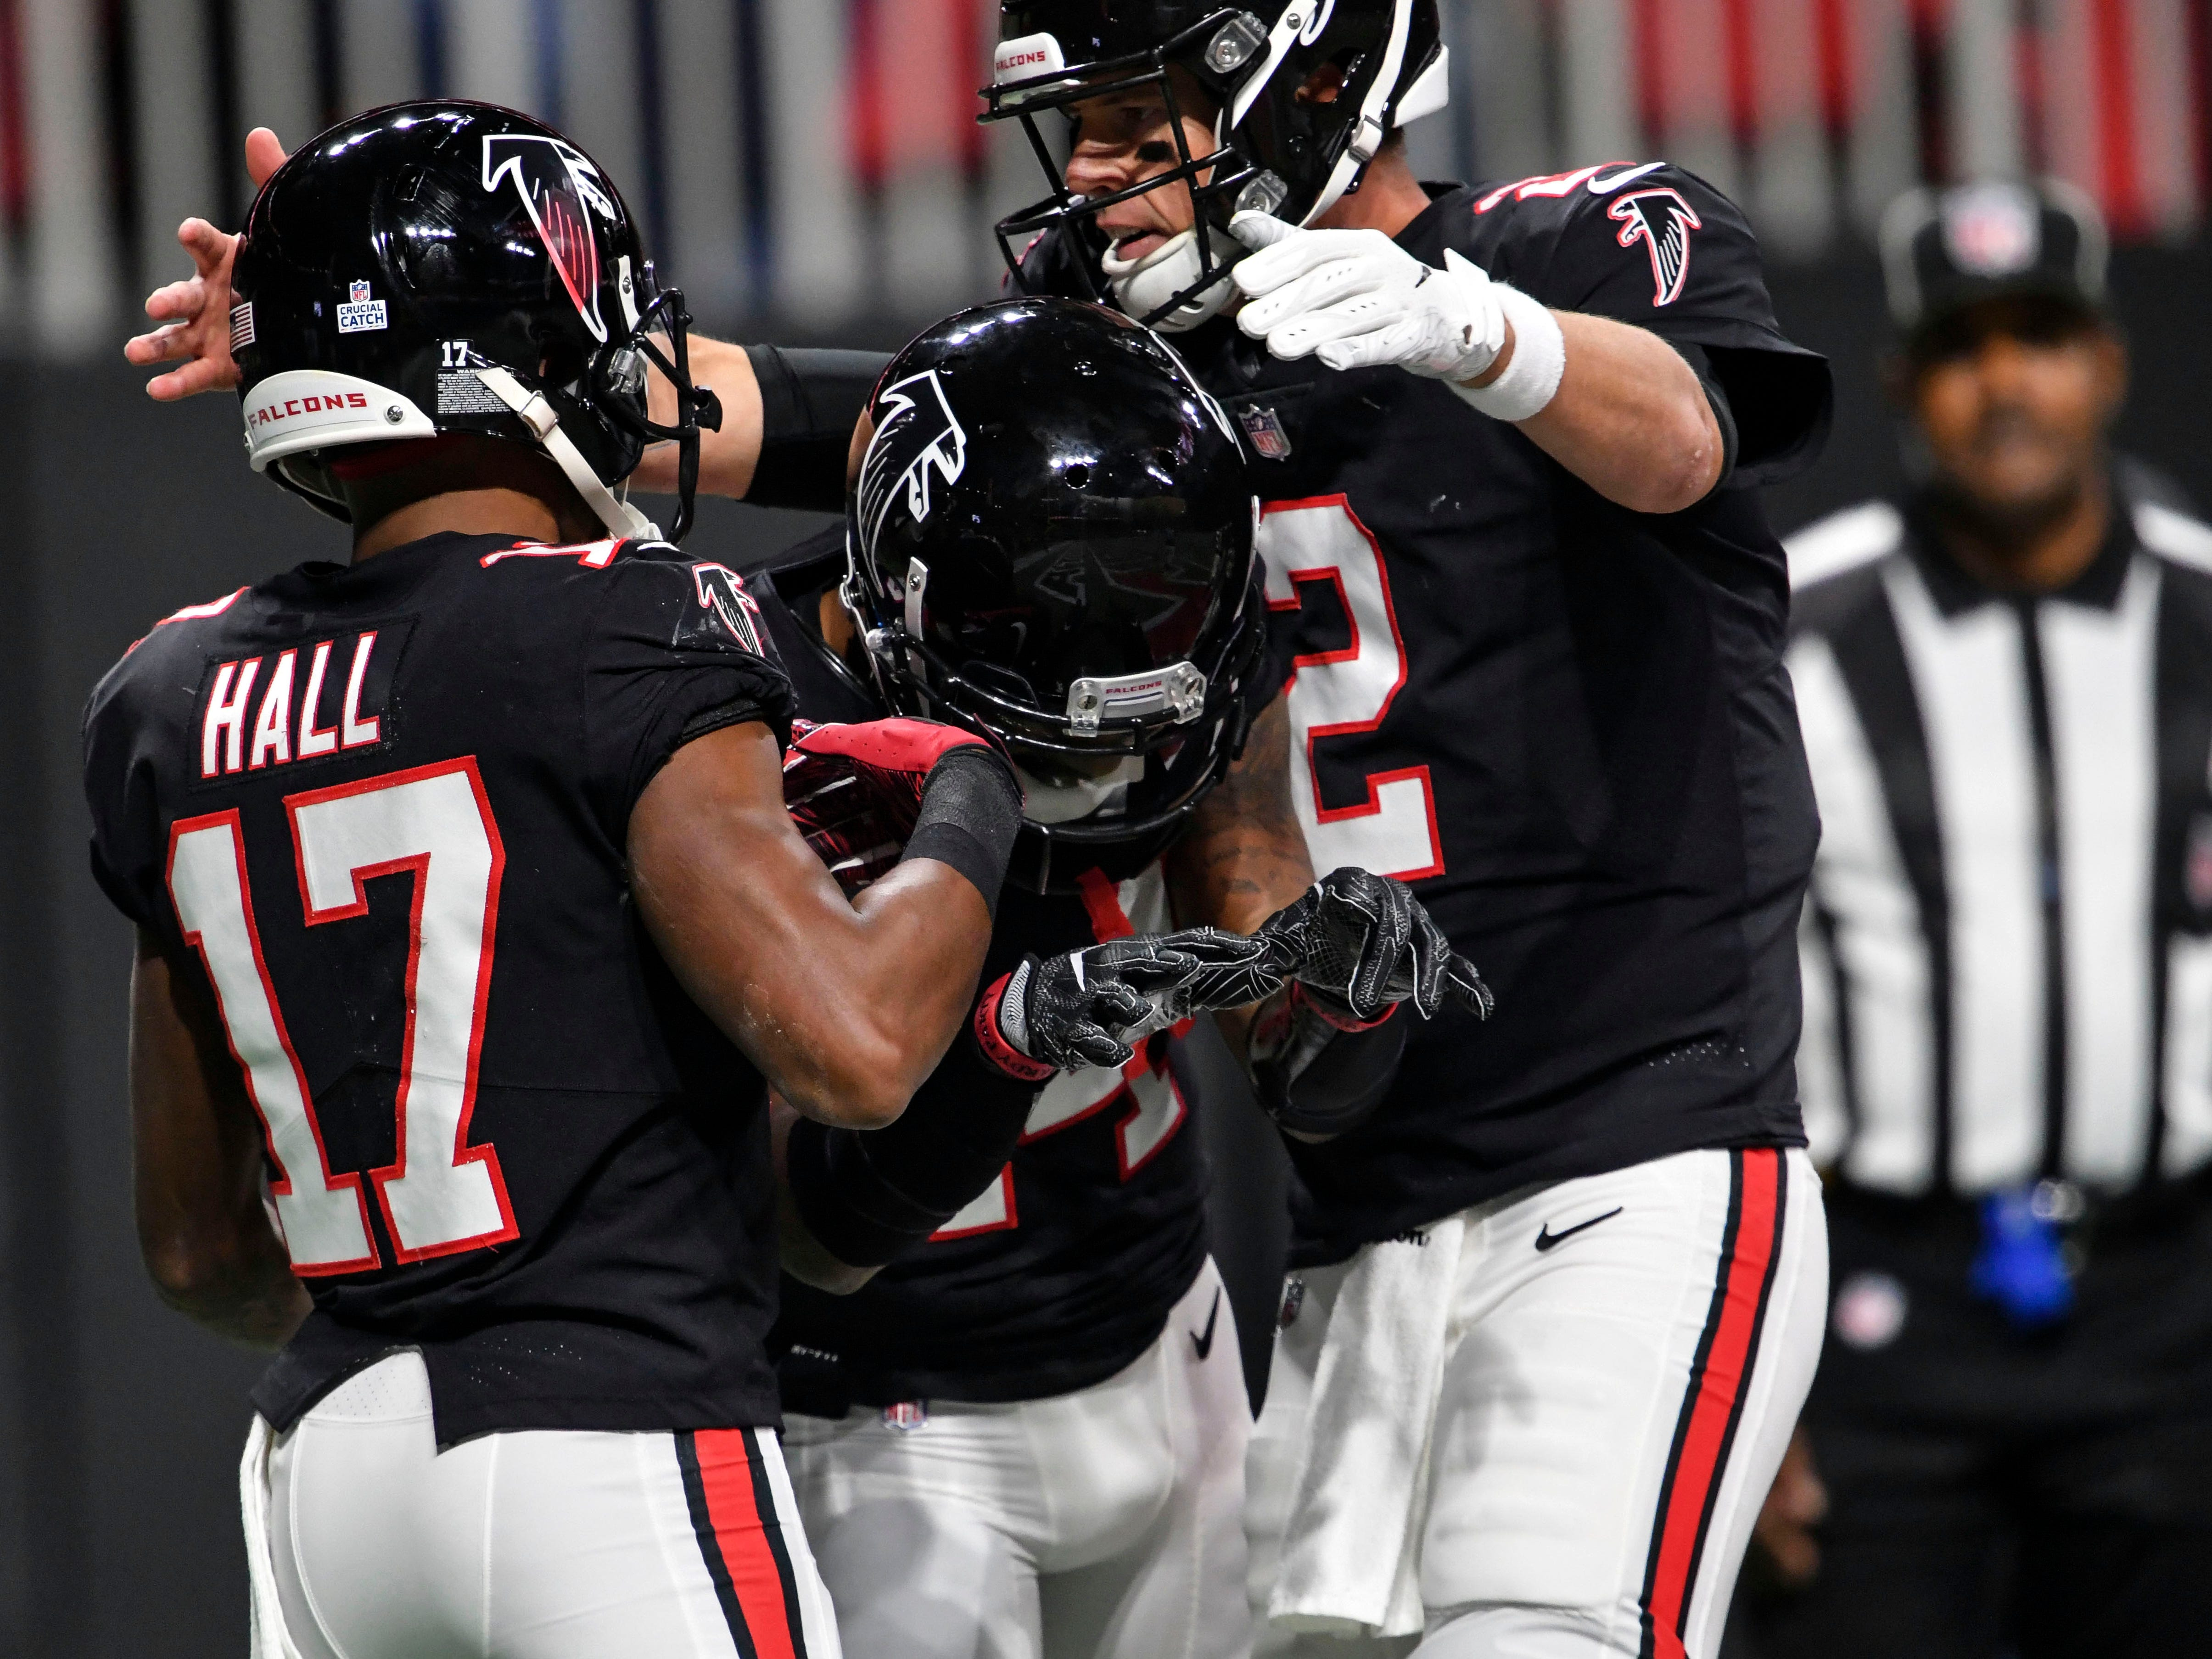 14. Falcons (16): Perhaps no team needed bye more than this one. Atlanta gets chance to heal a bit but must play six of nine on road on other side of break.